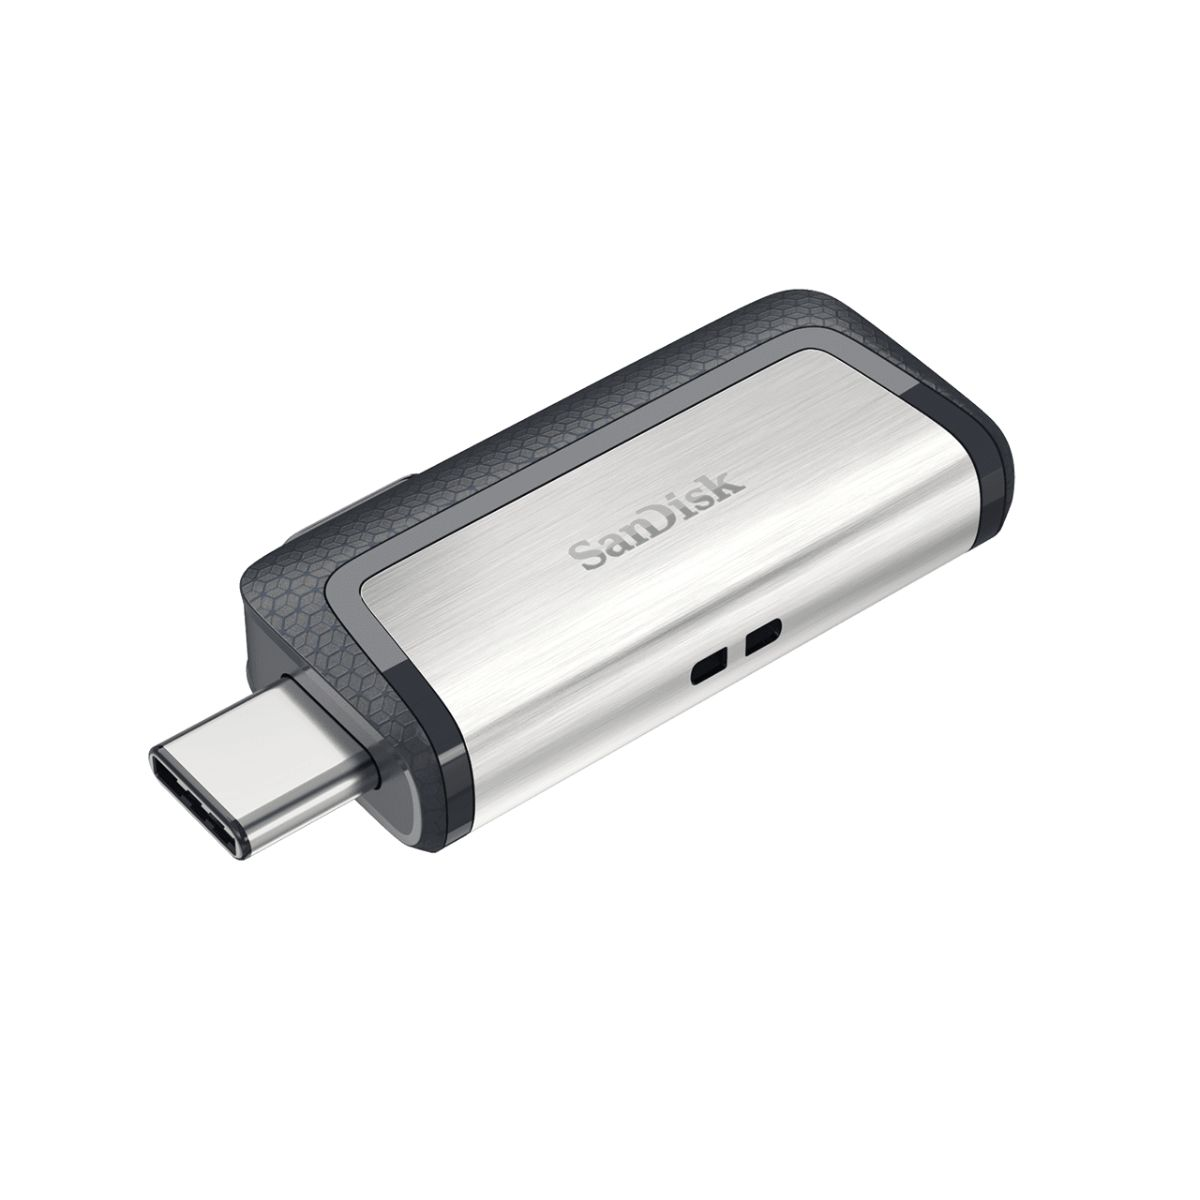 כרטיס זיכרון SANDISK Ultra Dual Drive USB Type-C 128GB